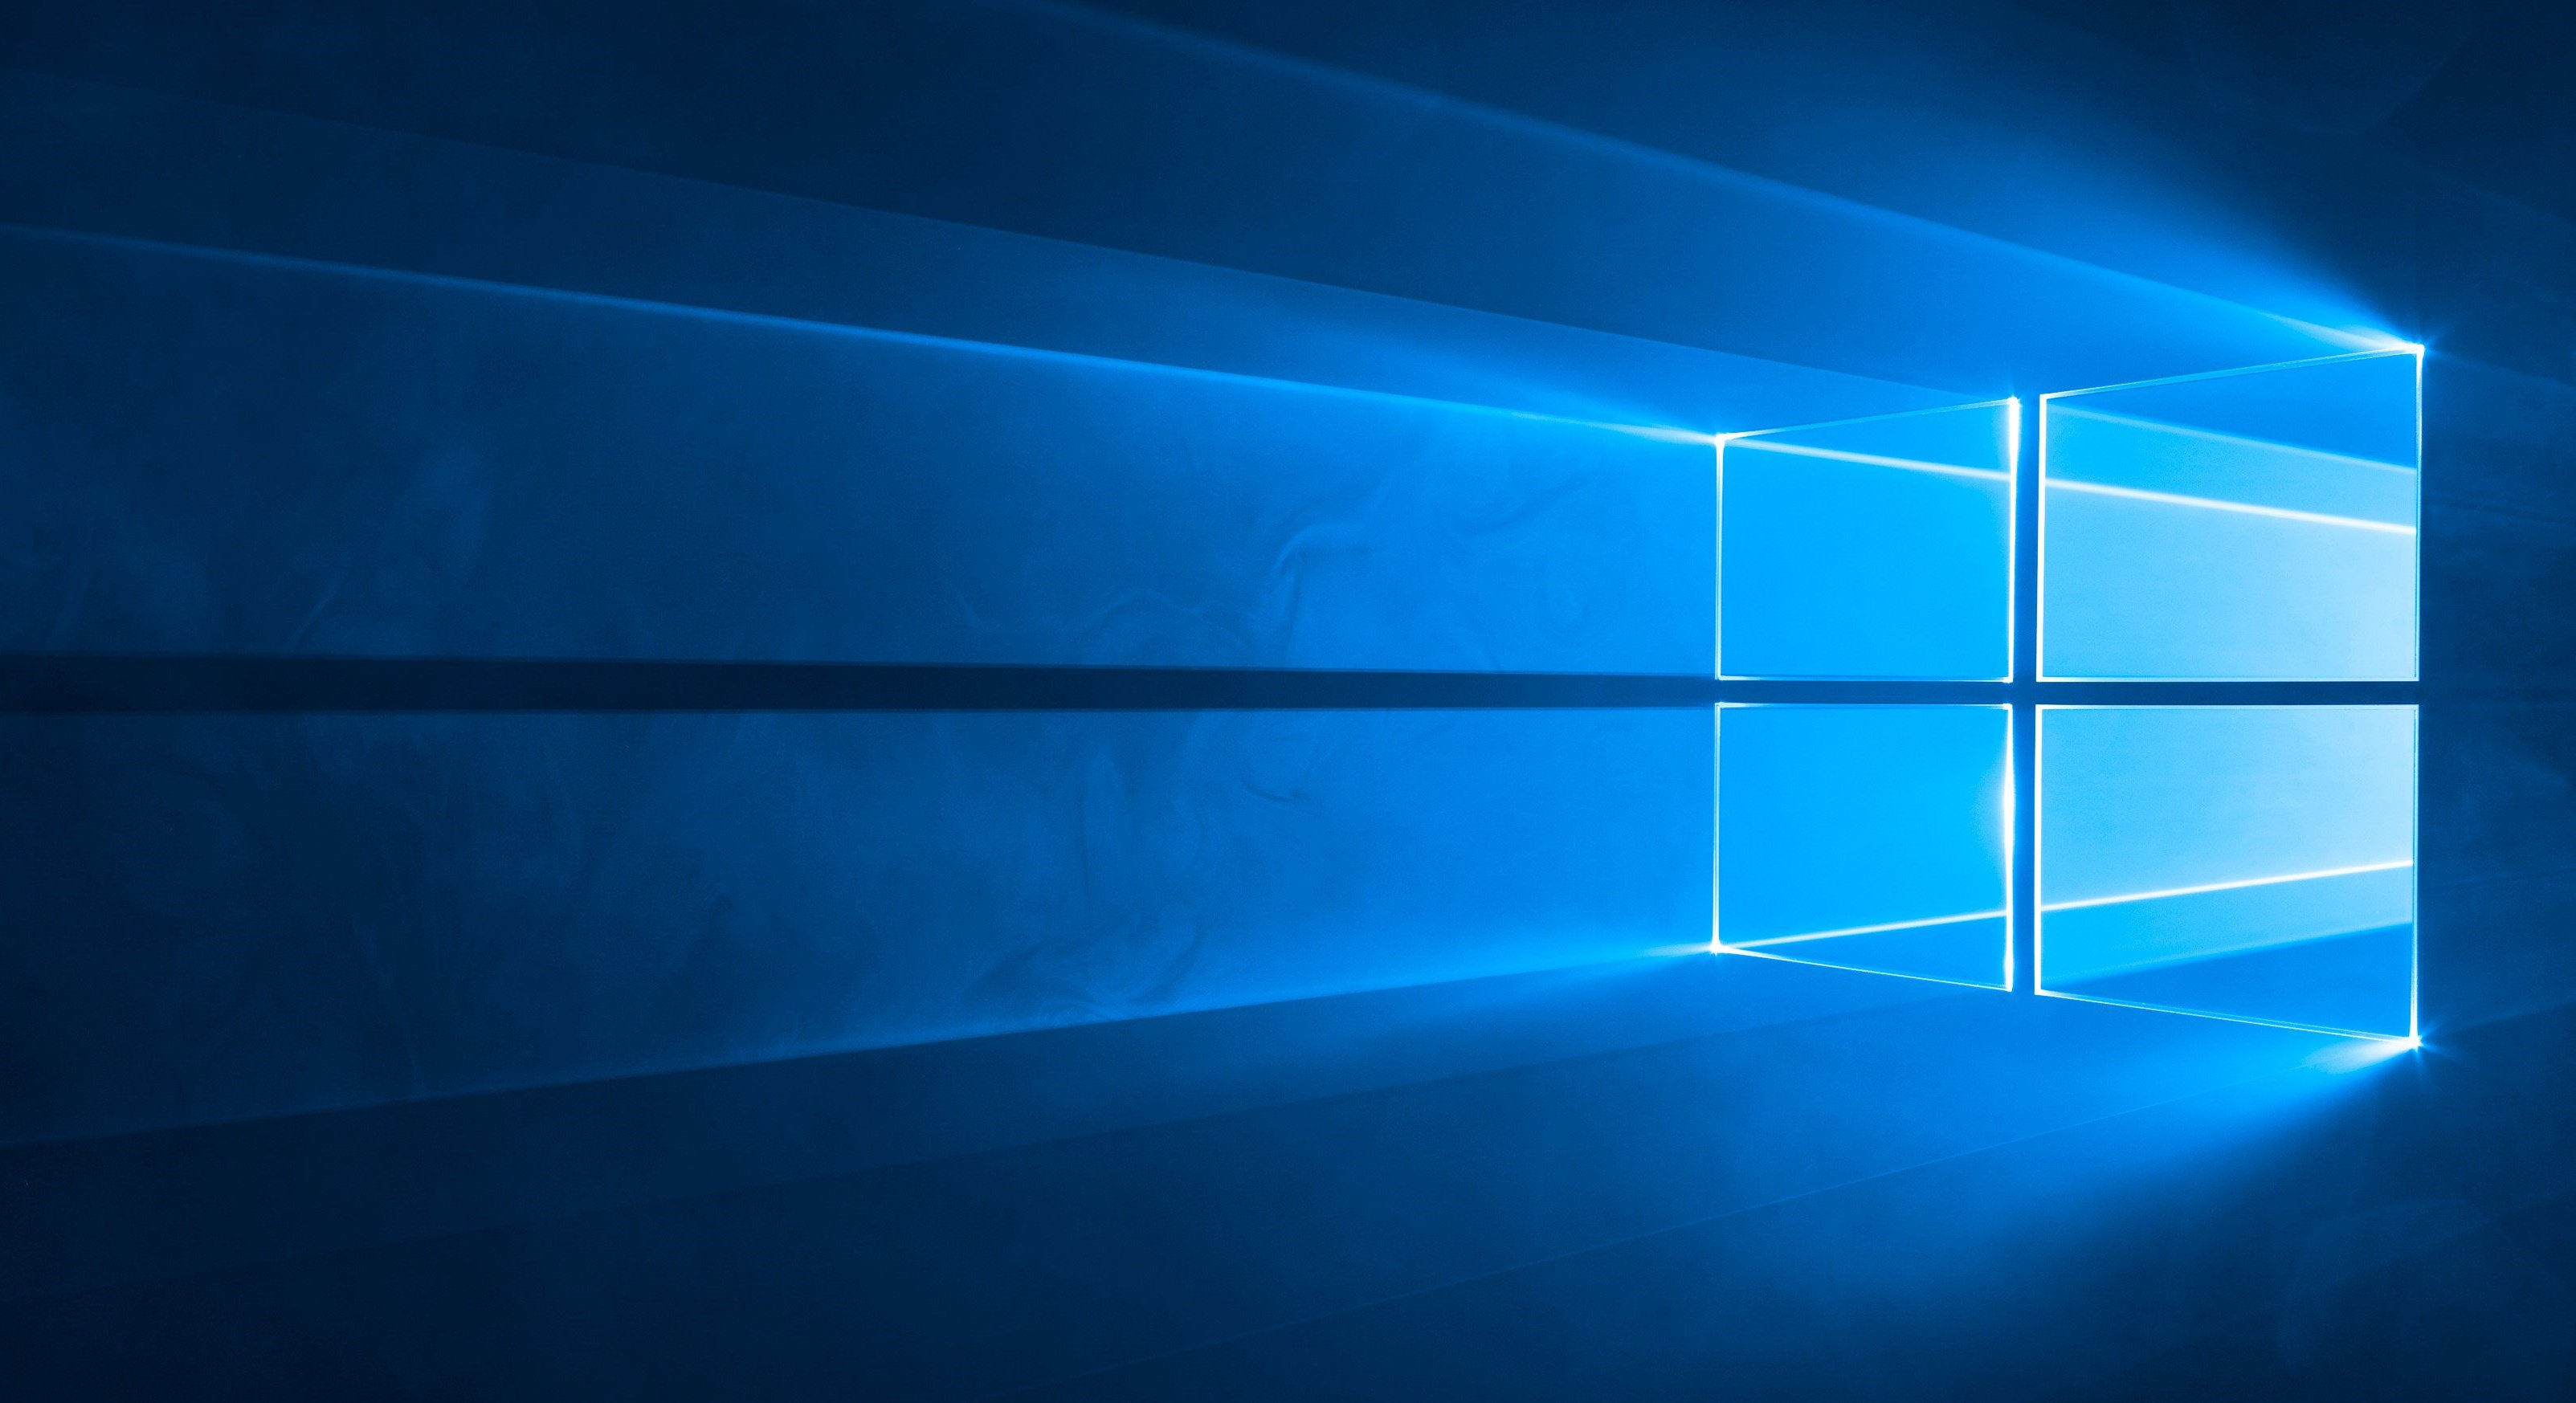 windows 10 tapeta